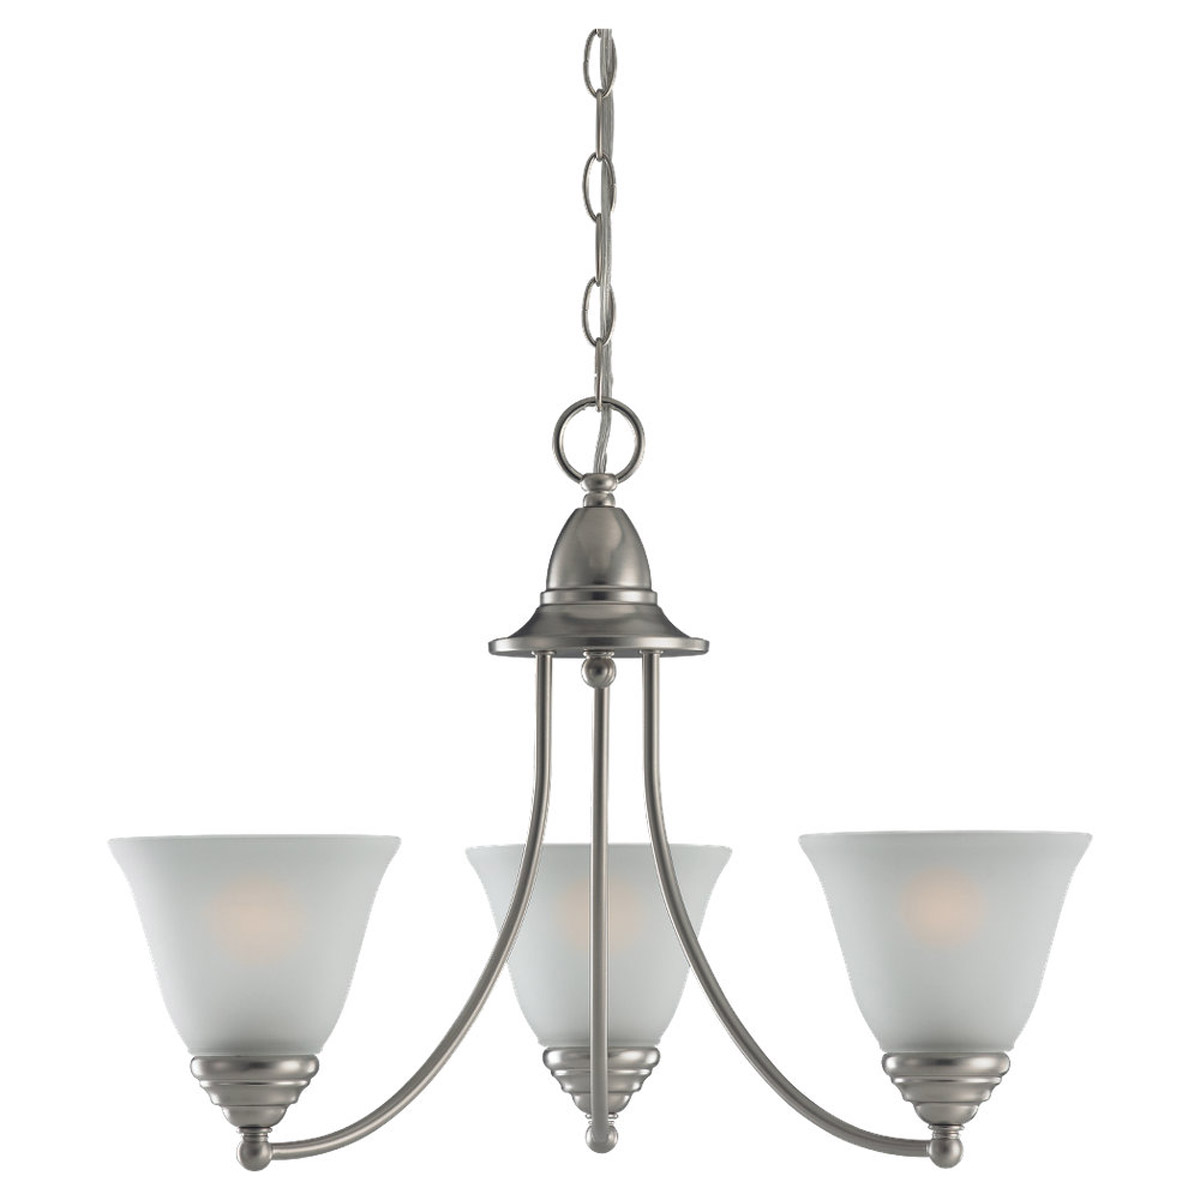 Sea Gull Lighting Albany 3 Light Chandelier in Brushed Nickel 31575-962 photo